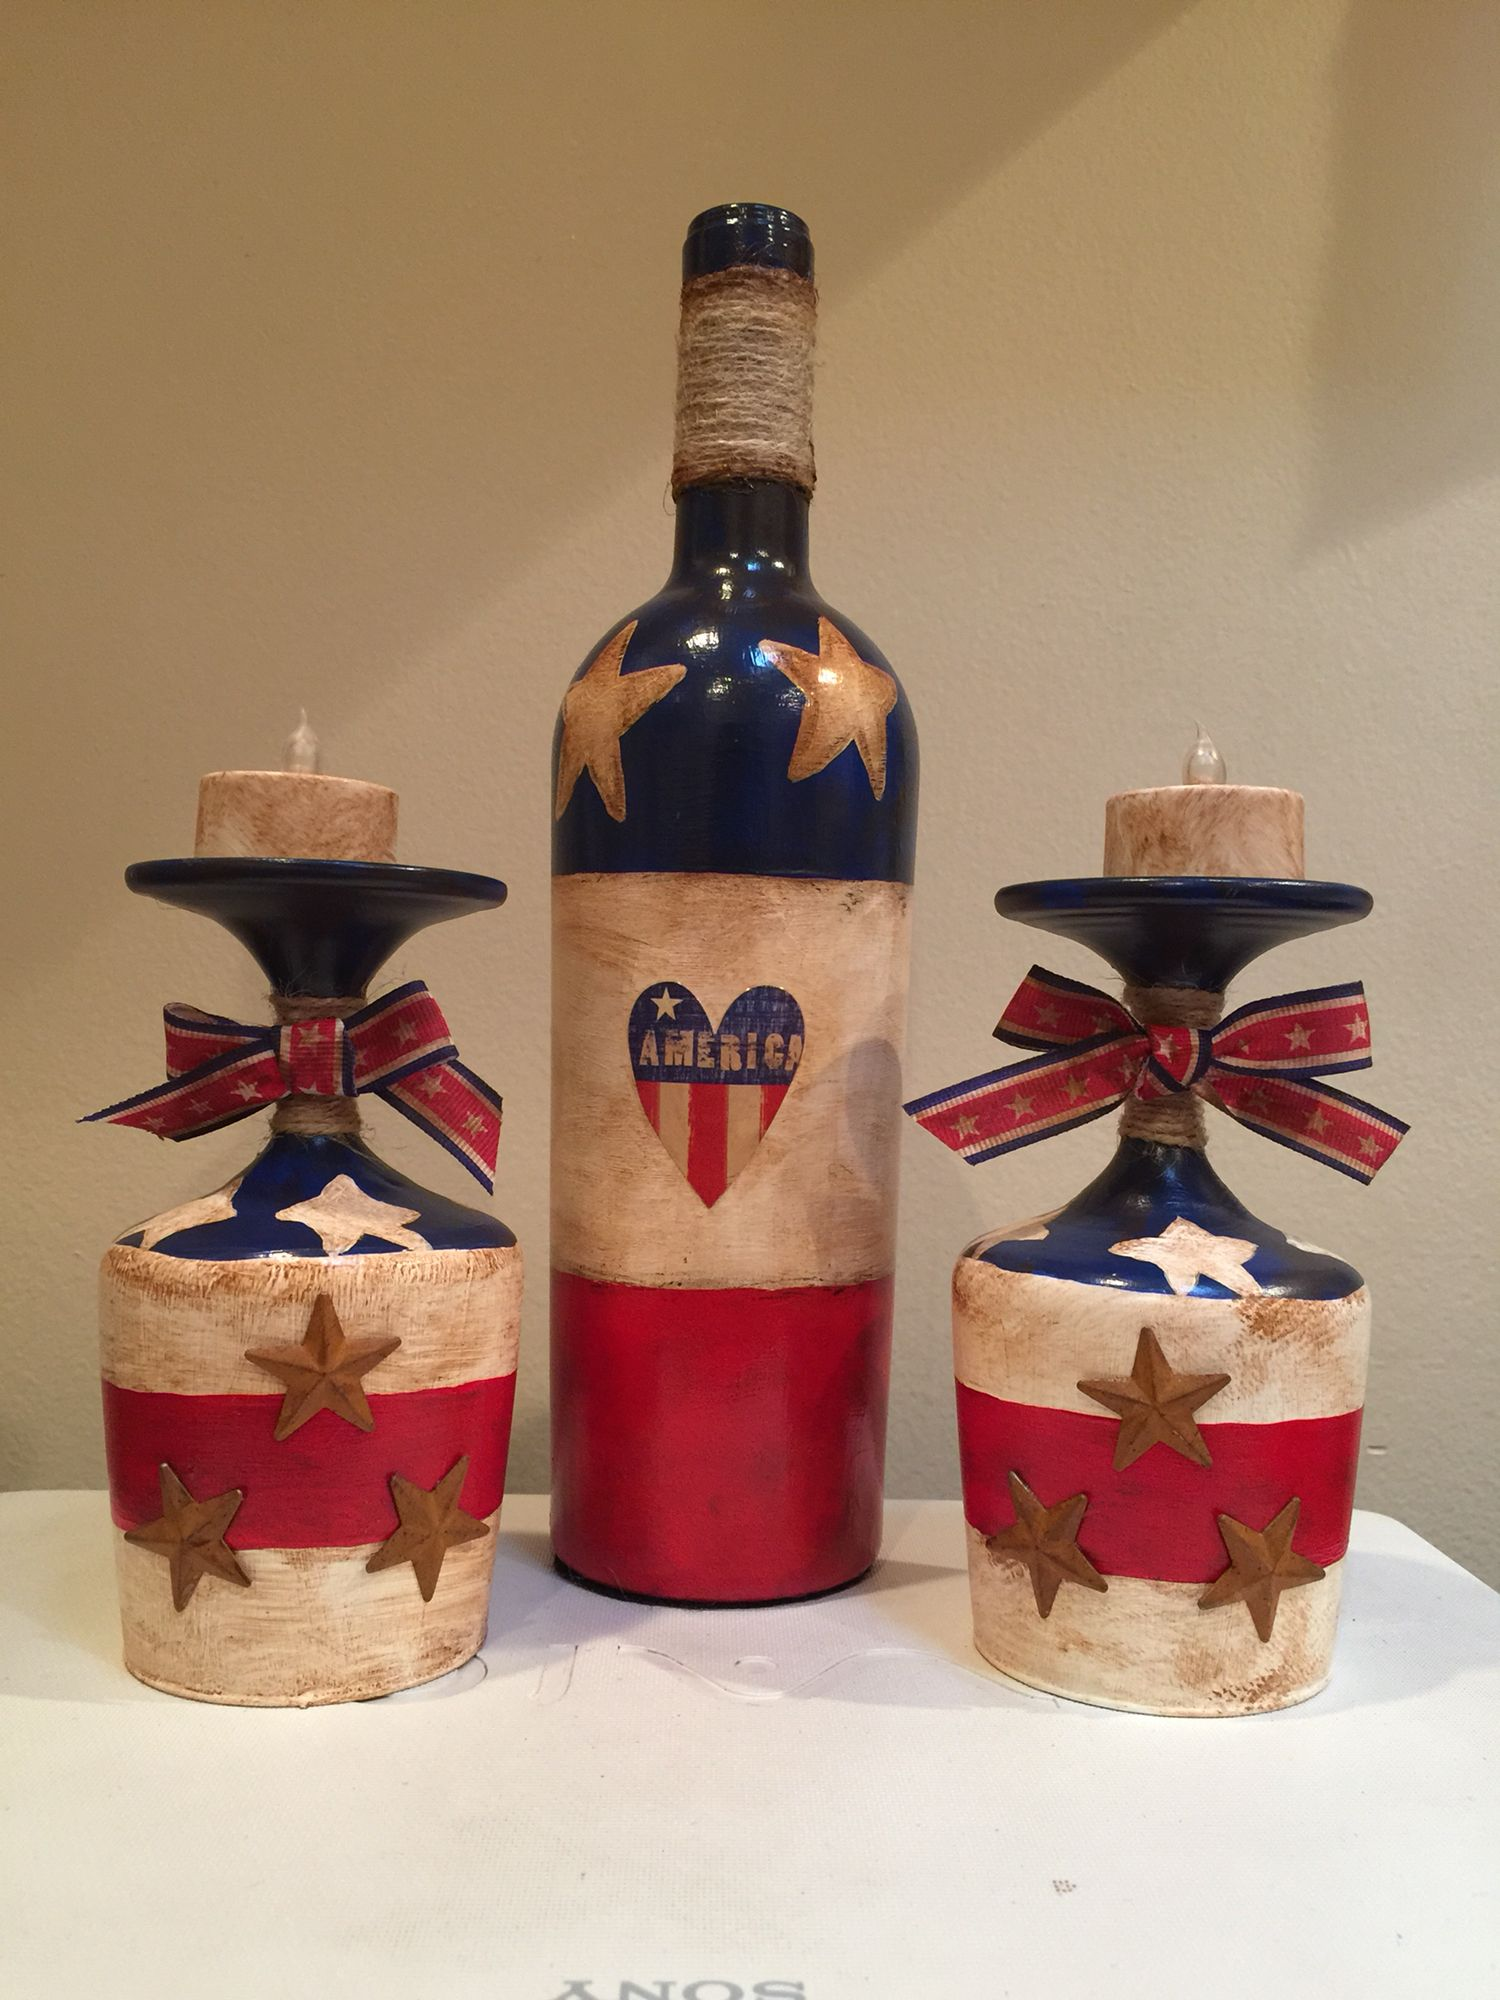 Hand Painted Wine Bottle And Candle Holders 4th Of July Decorations Hand Painted Wine Bottles Painted Wine Bottles Wine Bottle Crafts